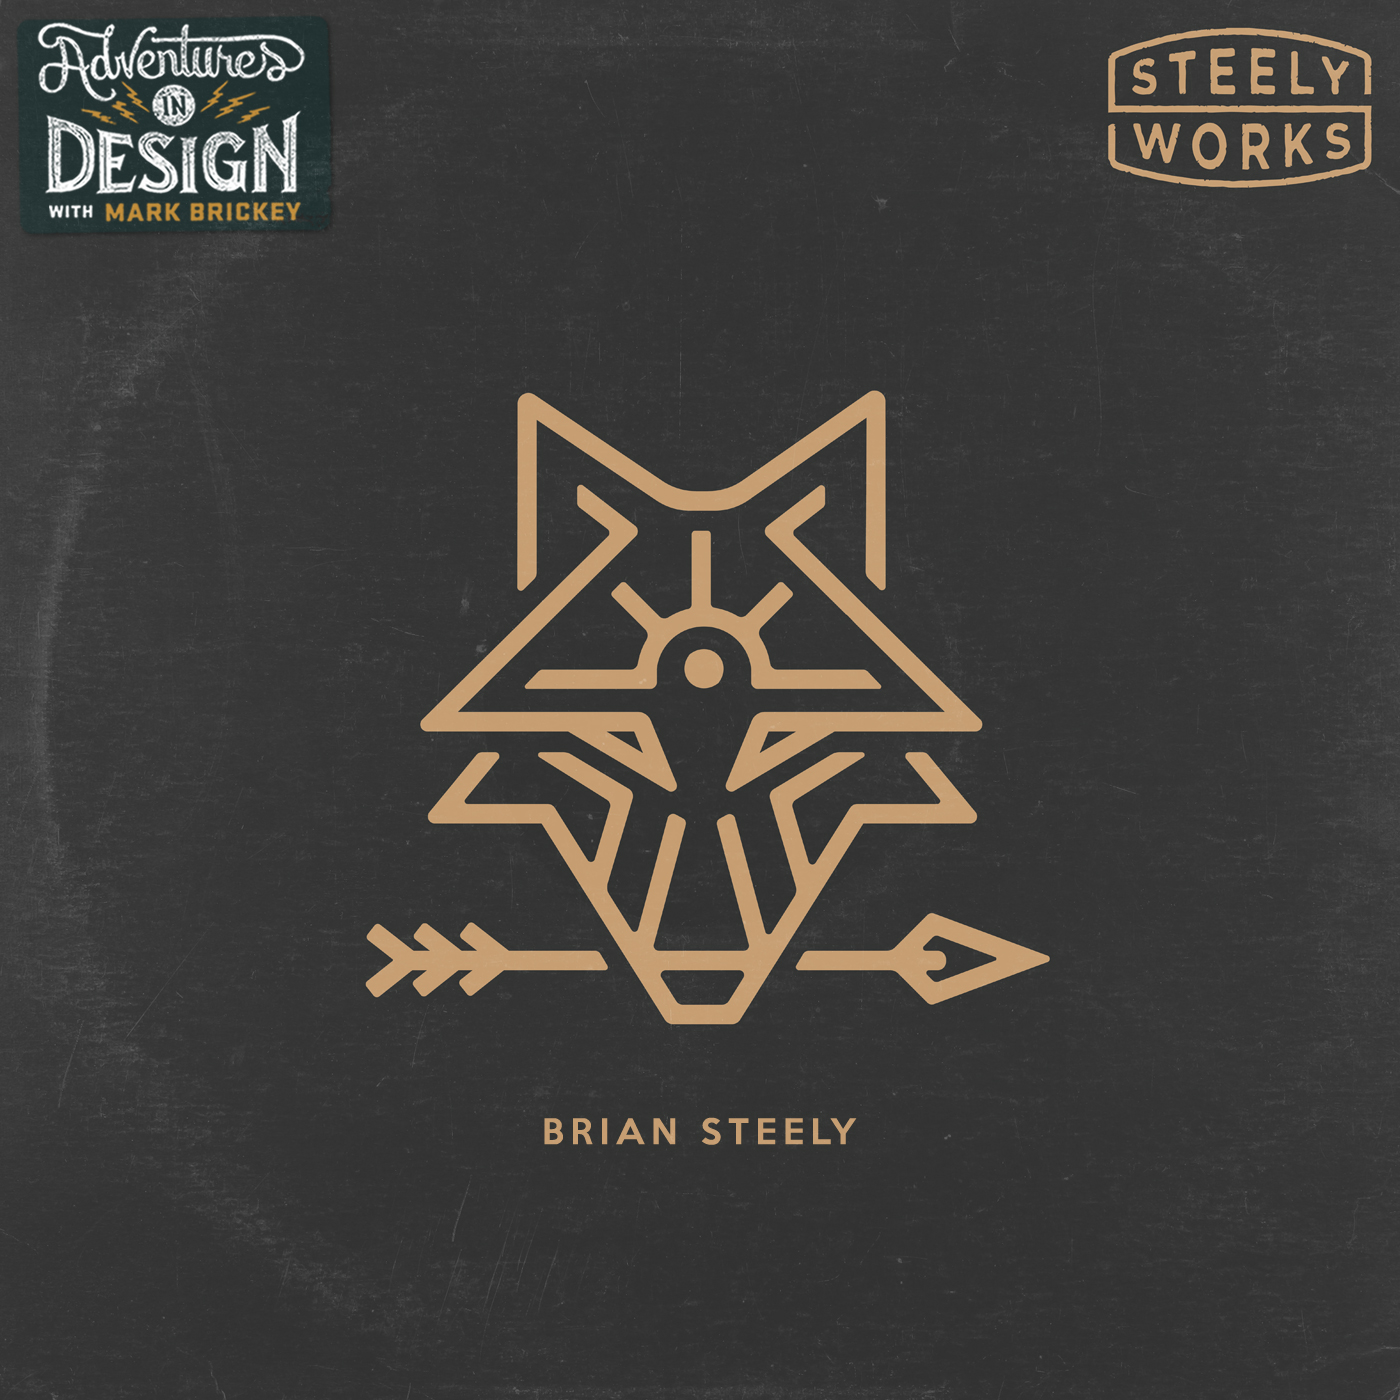 522 - Brian Steely